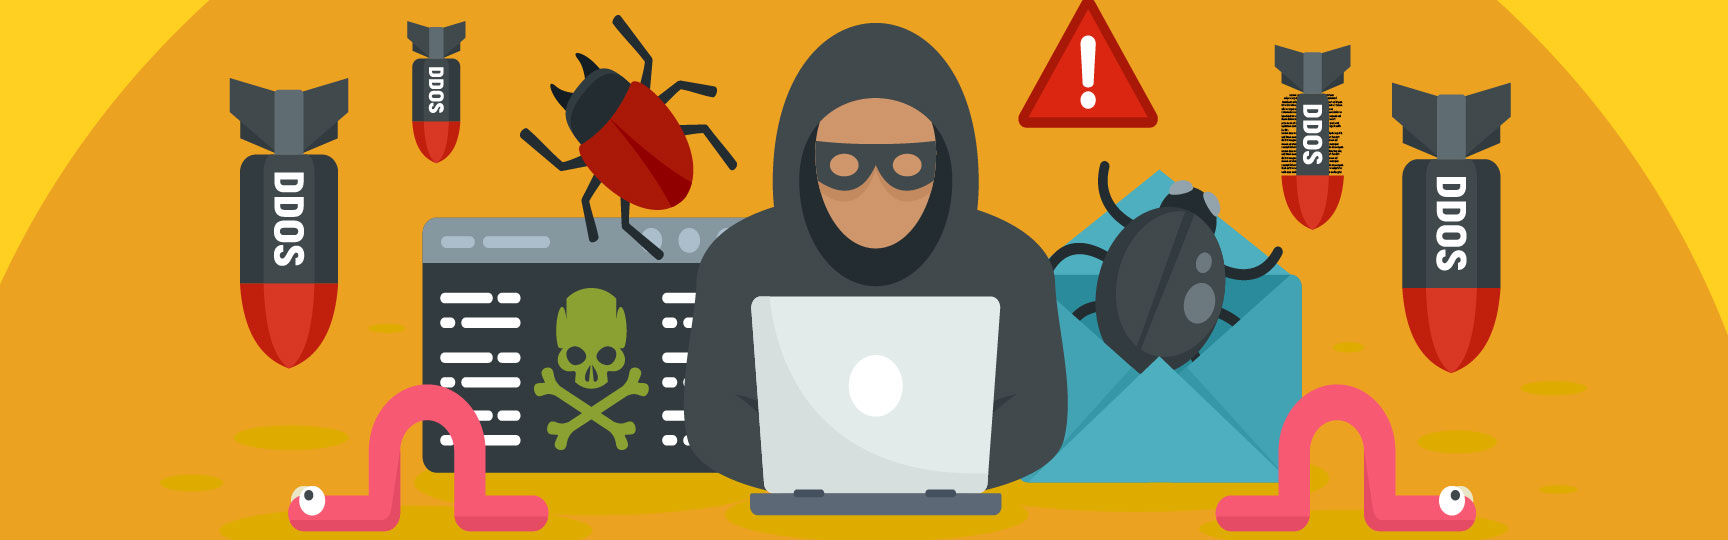 How To Protect Your Device From Ransomware Attacks